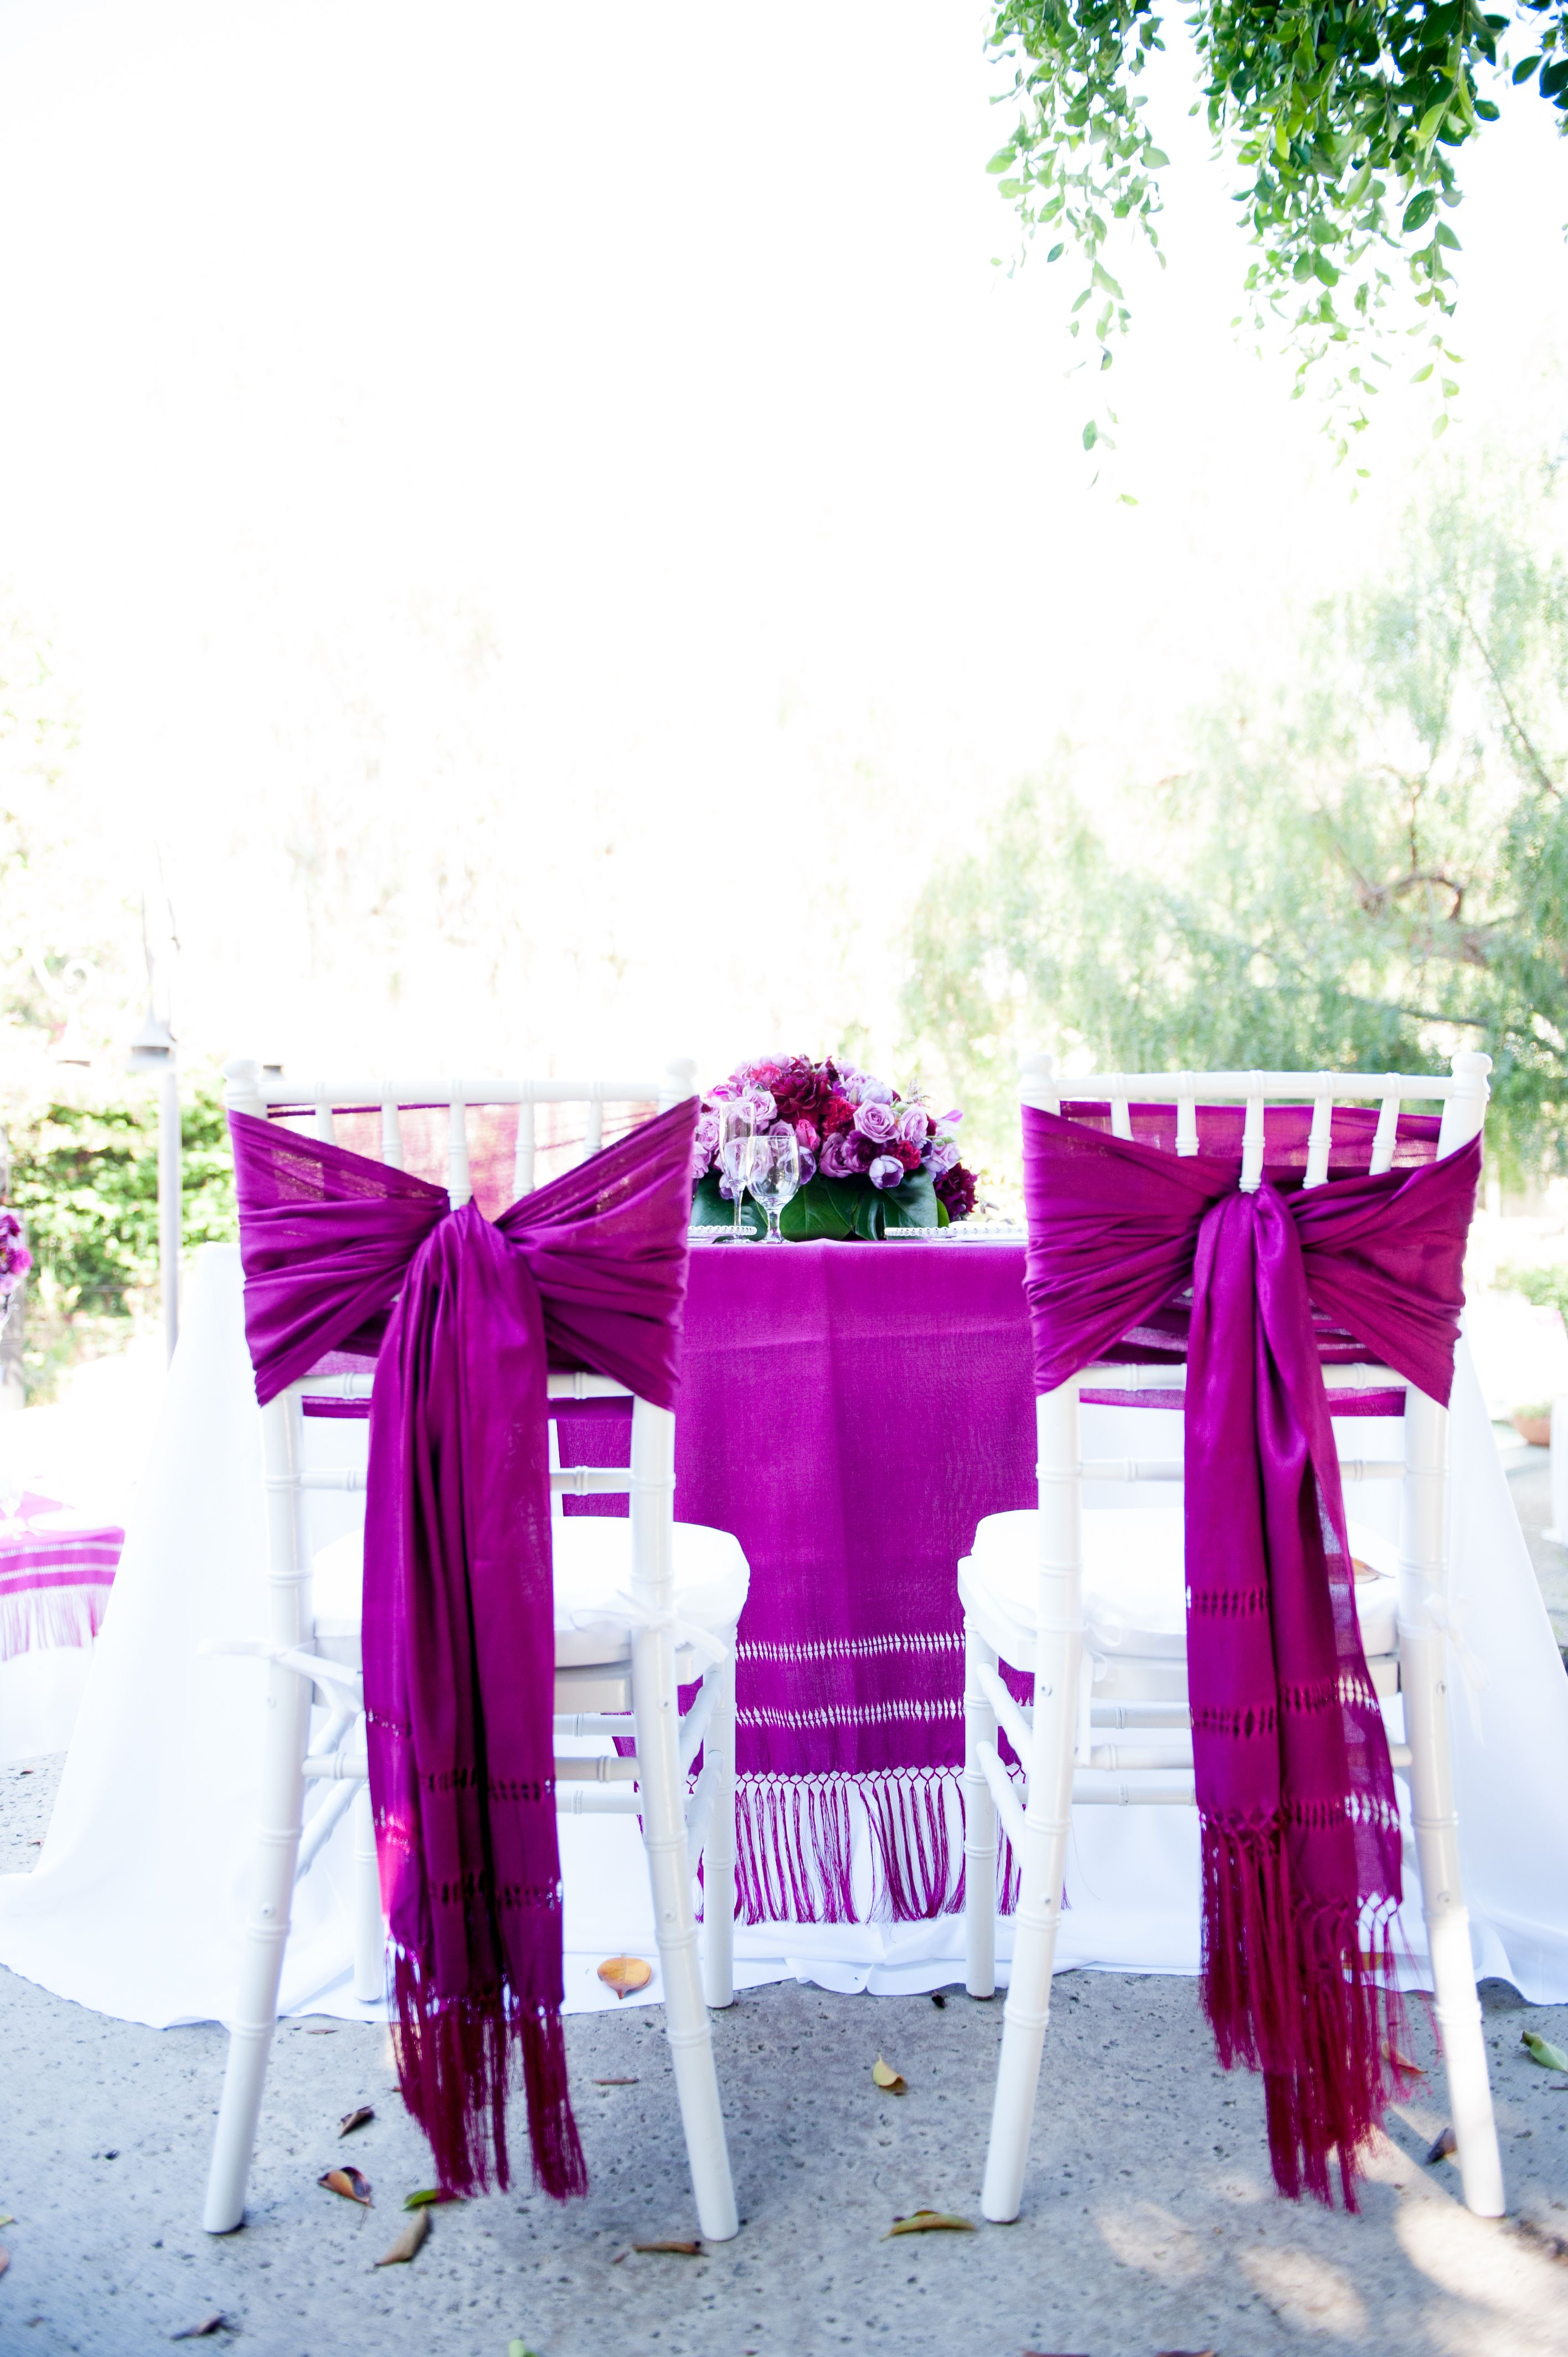 The Bride and Groom Chairs Mexican Rebosos Beautiful